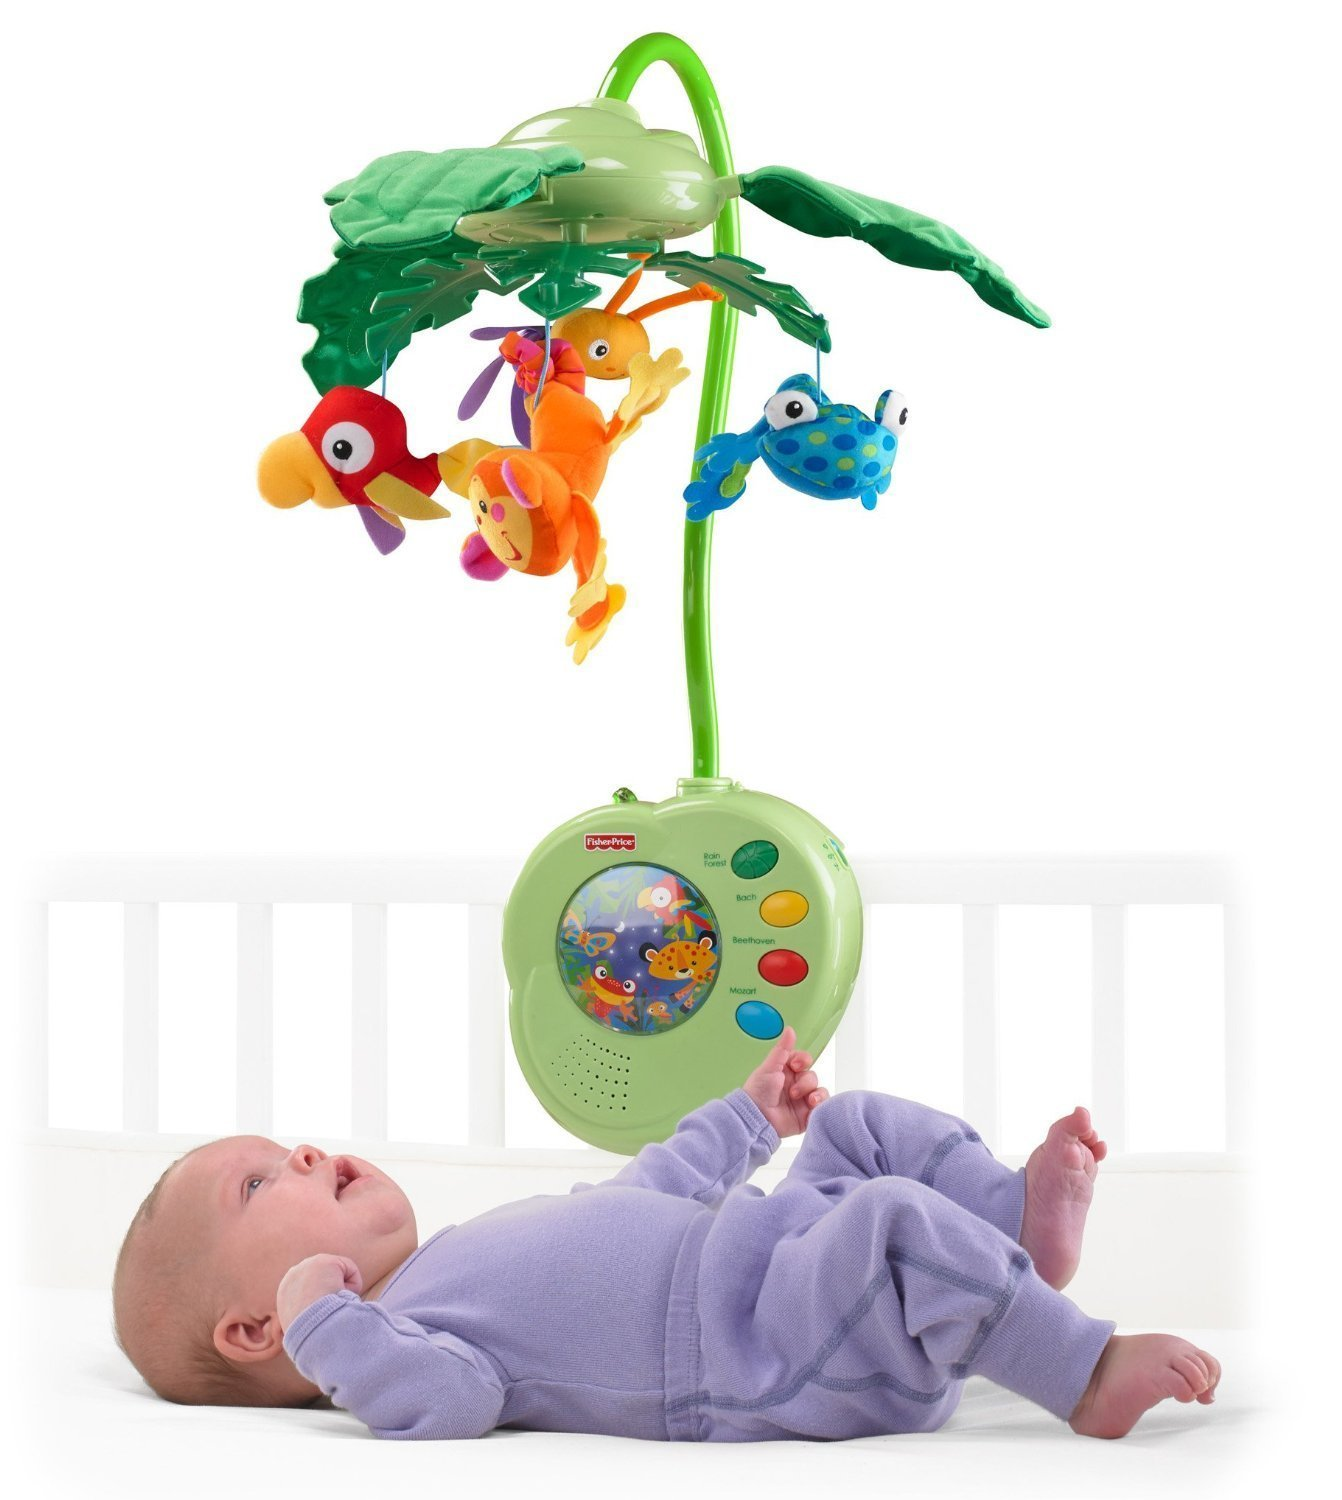 Fisher-Price Musical Mobile, Rainforest Peek-a-Boo Leaves